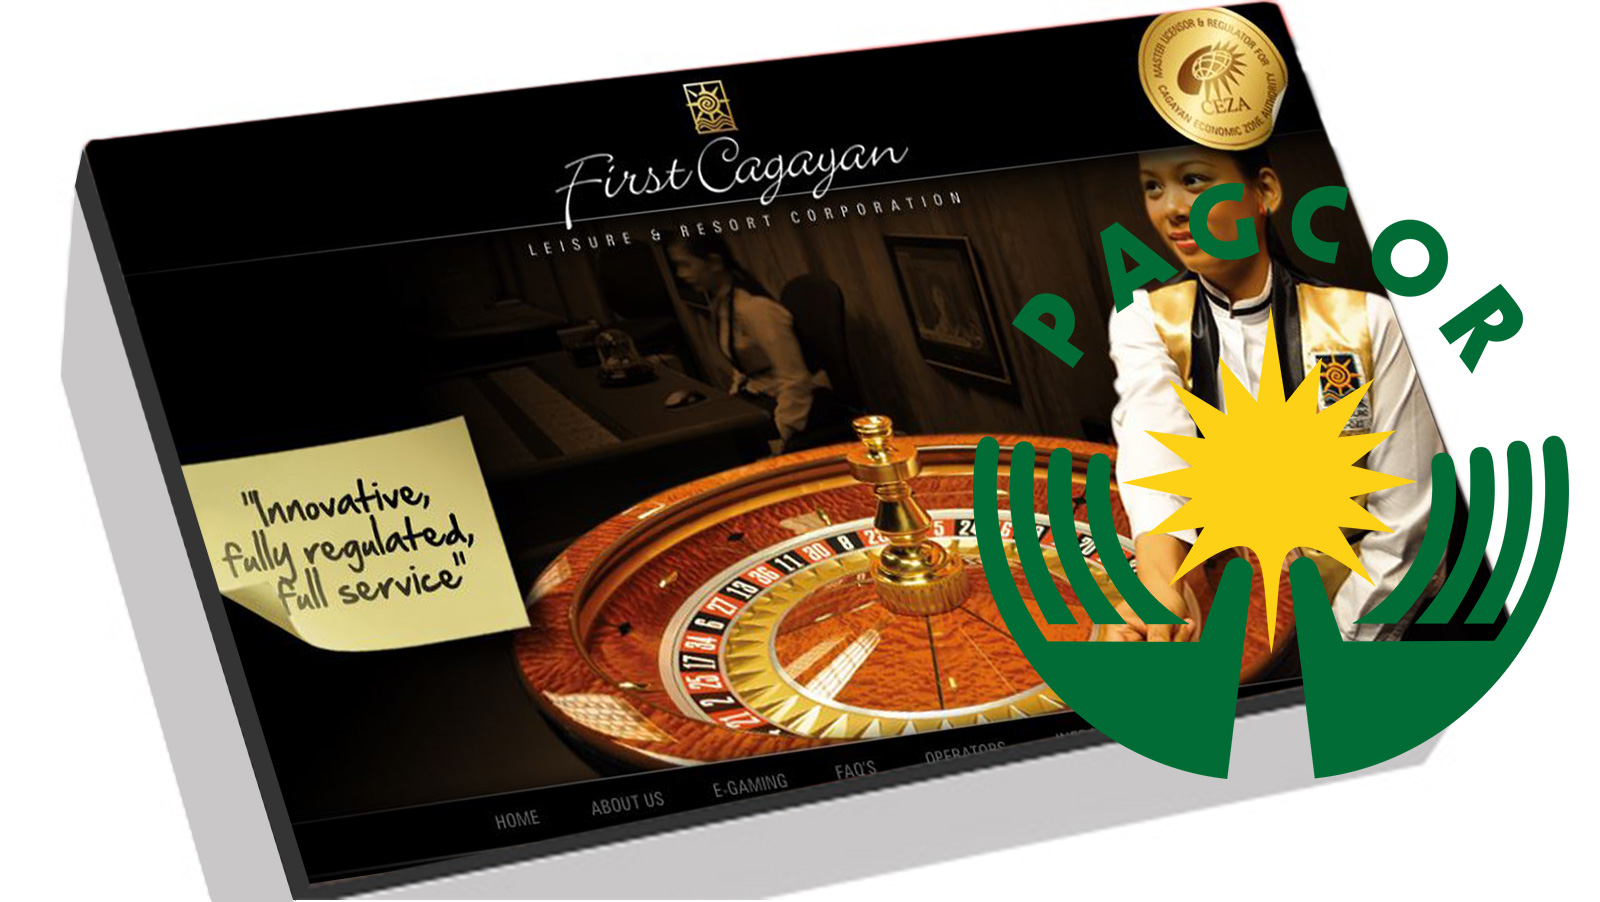 First Cagayan lost half its online gambling licensees to PAGCOR